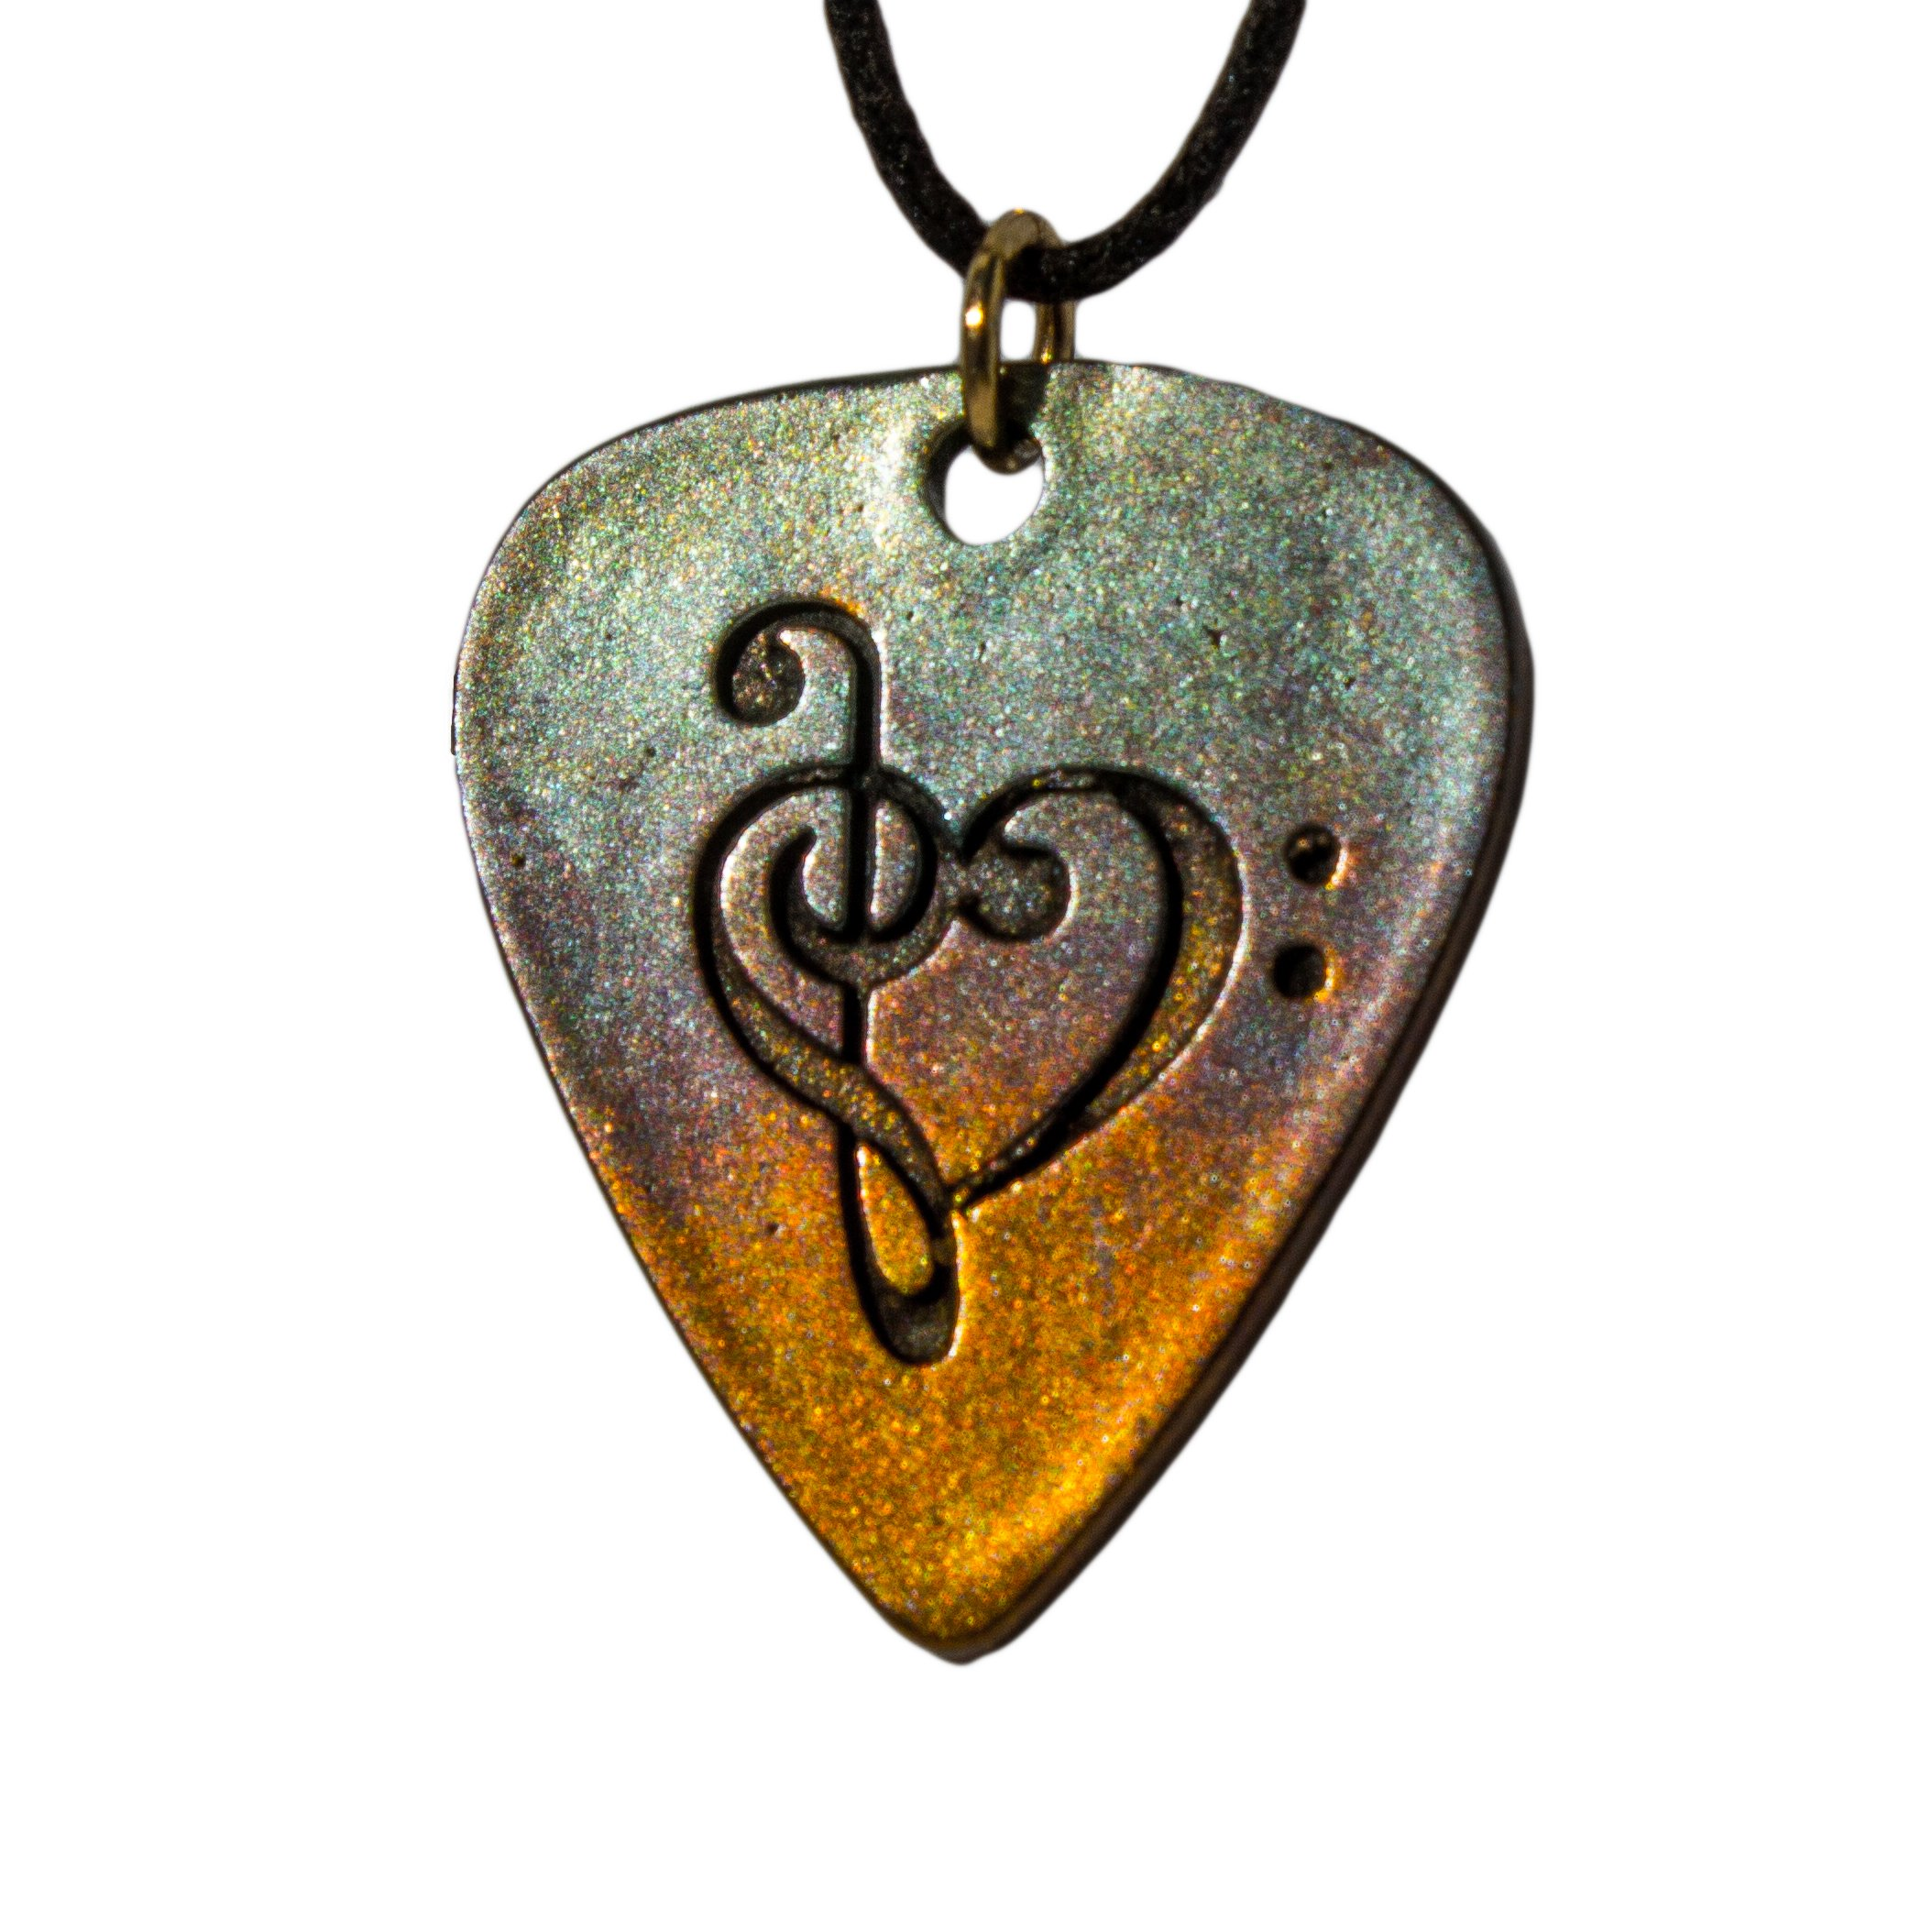 From War to Peace Guitar Pick Rock and Roll Patina Pendant Necklace on Adjustable Natural Fiber Cord